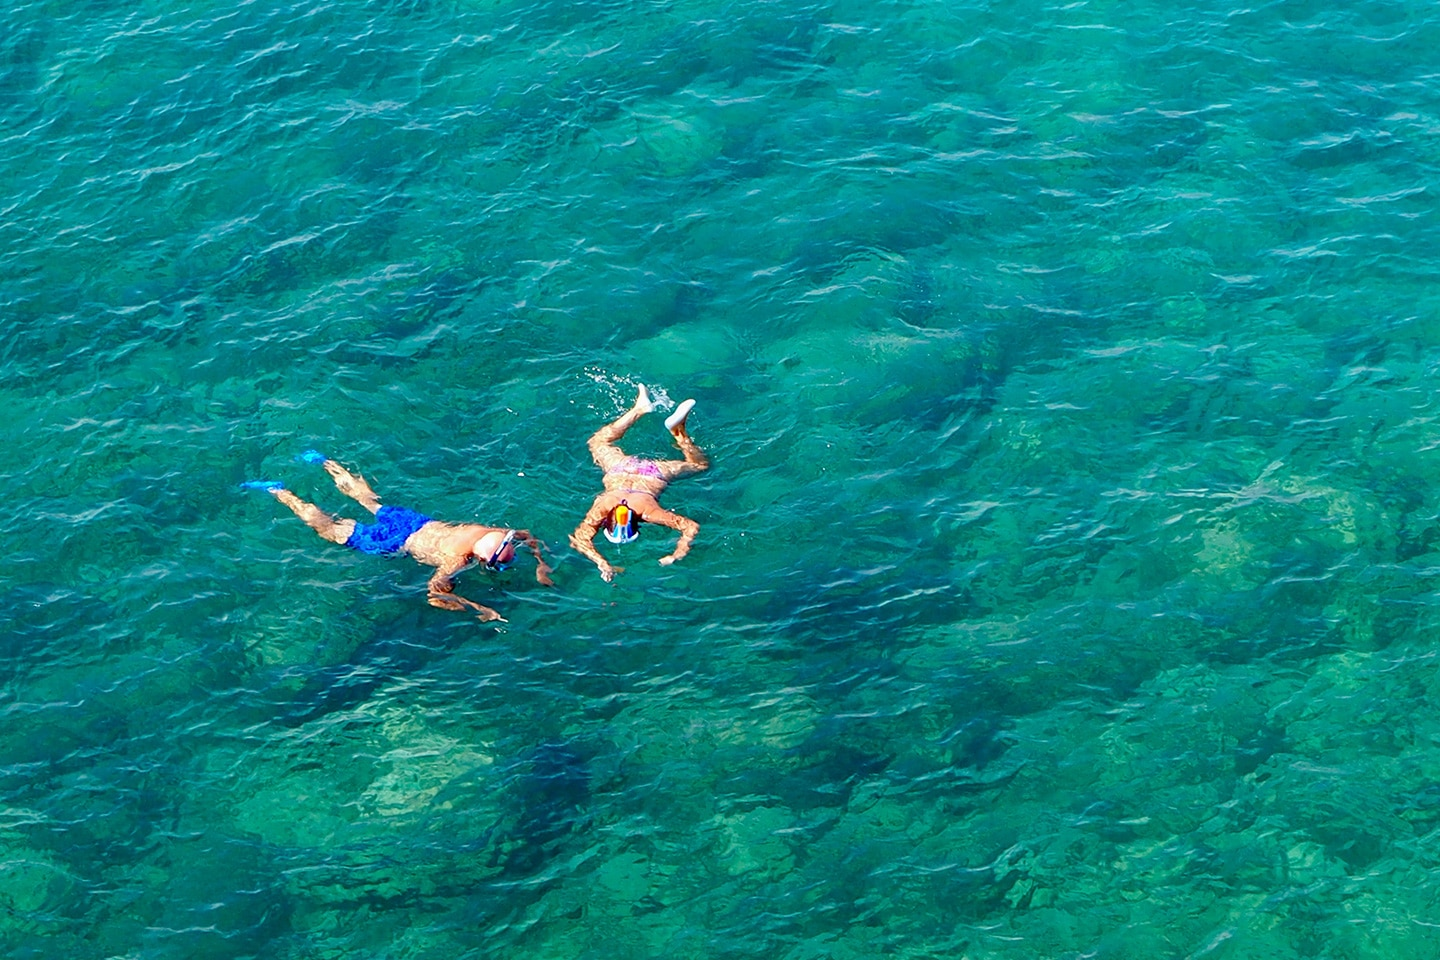 Woman and man are snorkeling wearing water shoes